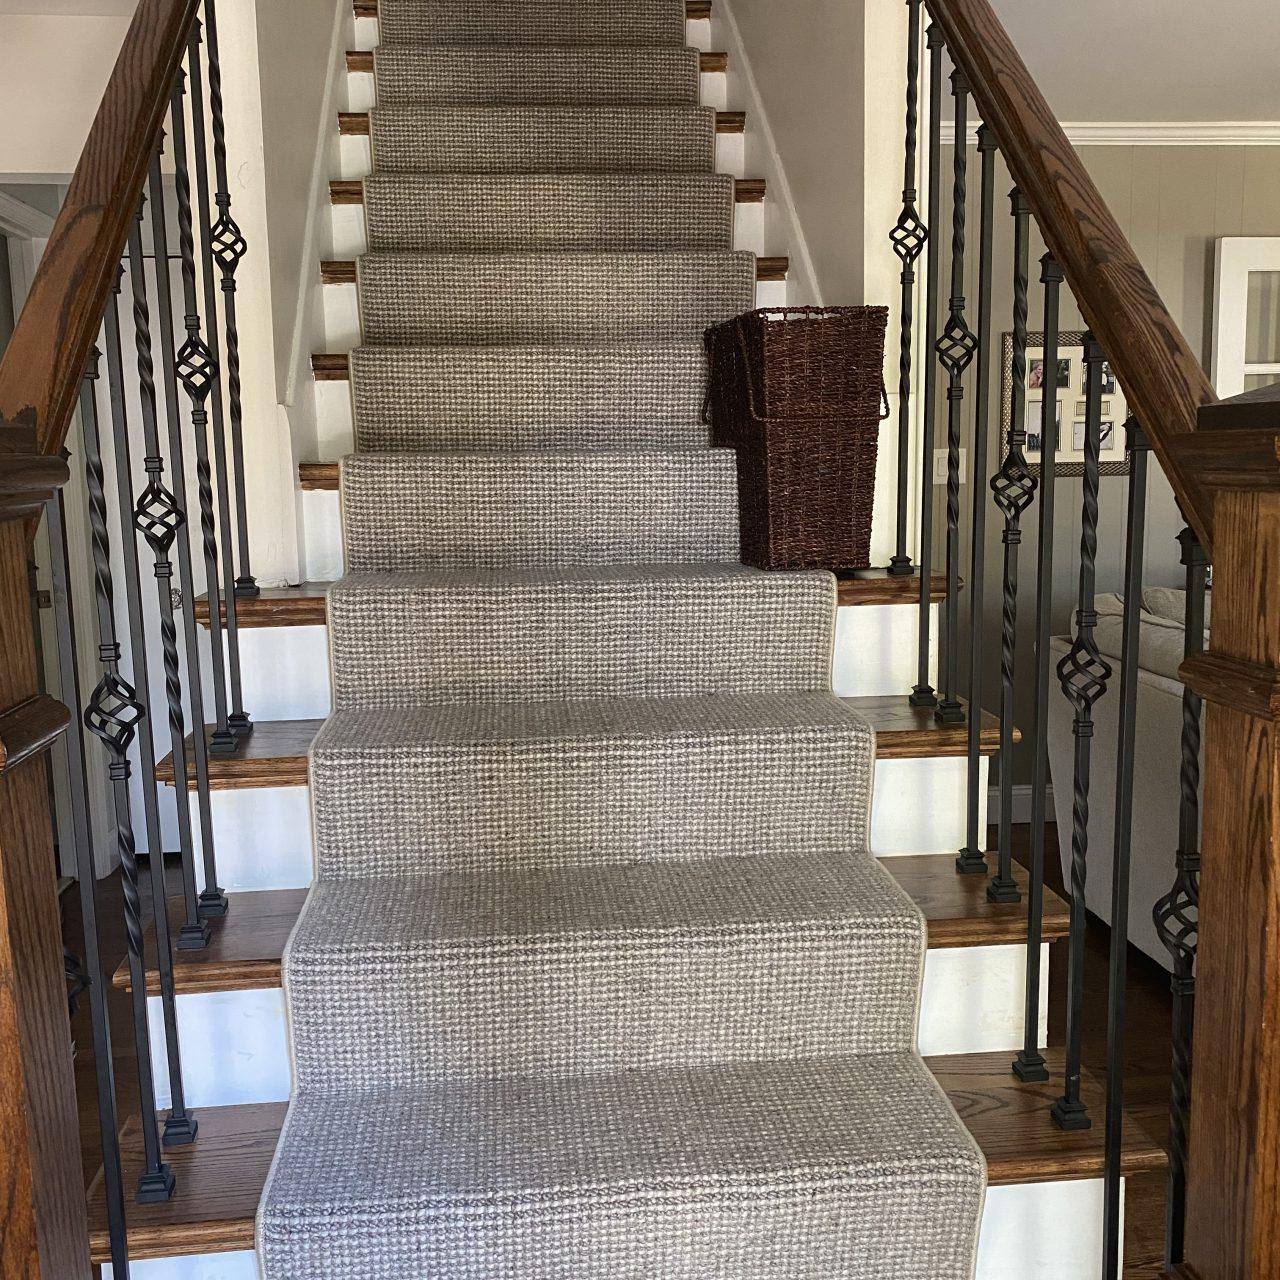 How To Choose a Carpet Runner for Your Stairs